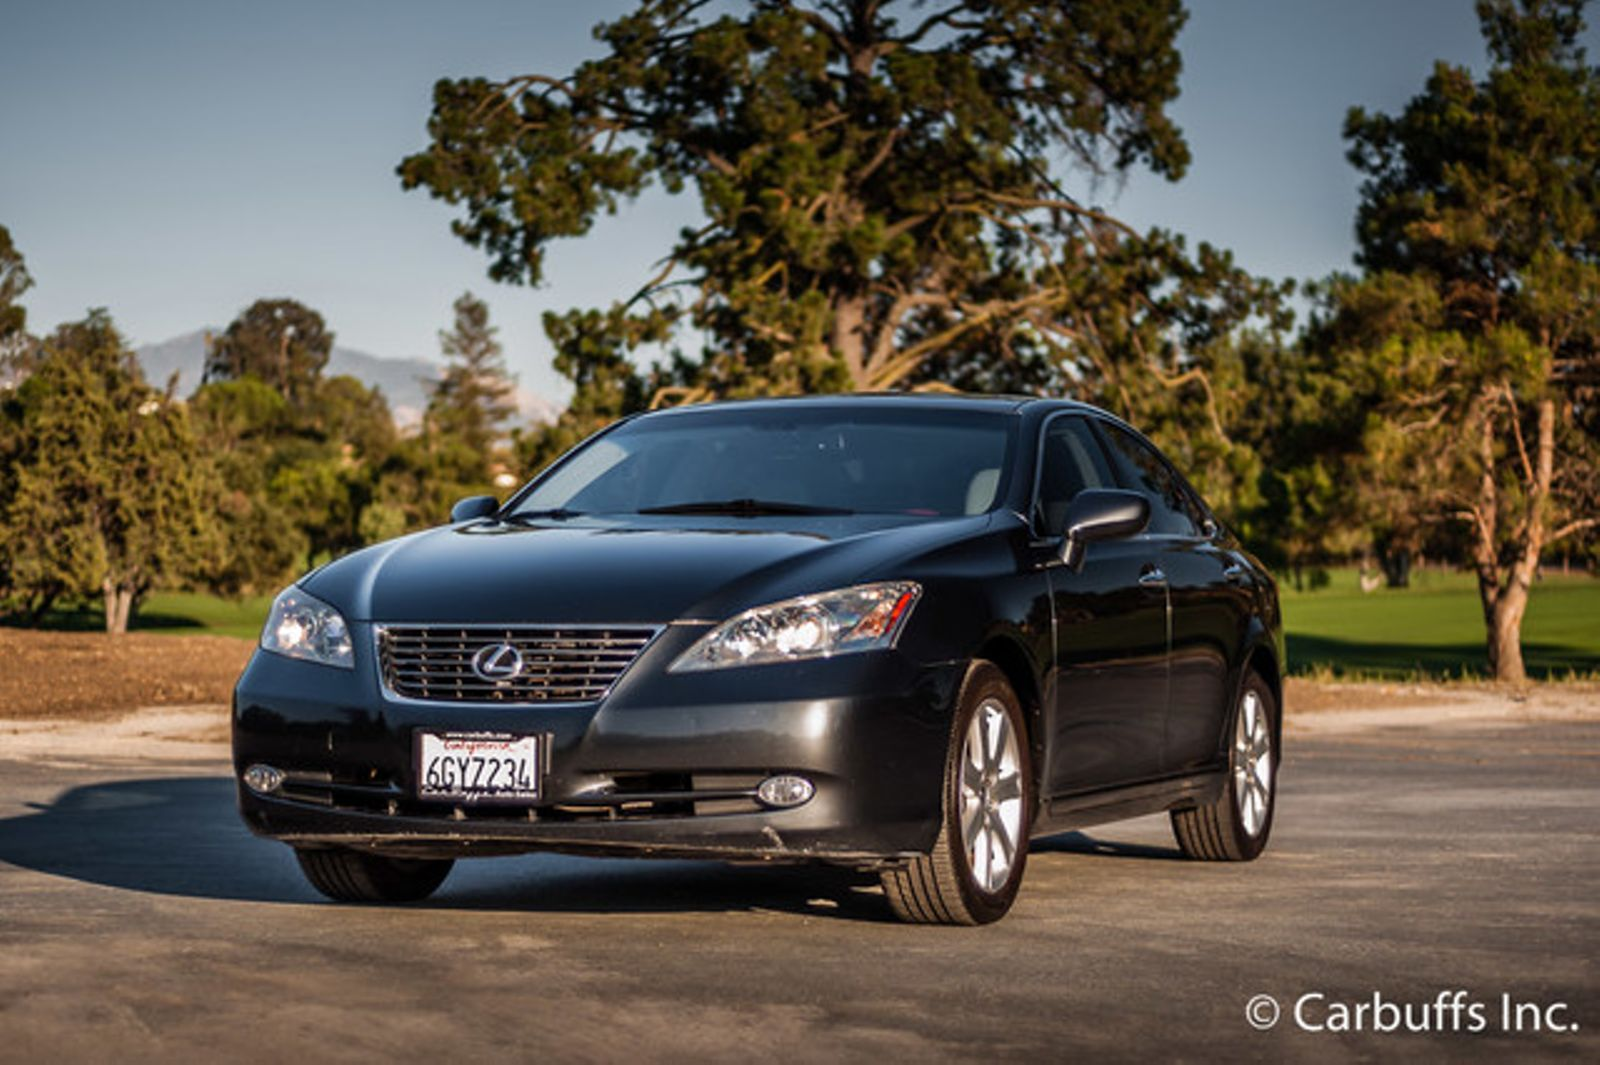 2009 lexus es 350 sedan concord ca carbuffs concord ca 94520. Black Bedroom Furniture Sets. Home Design Ideas